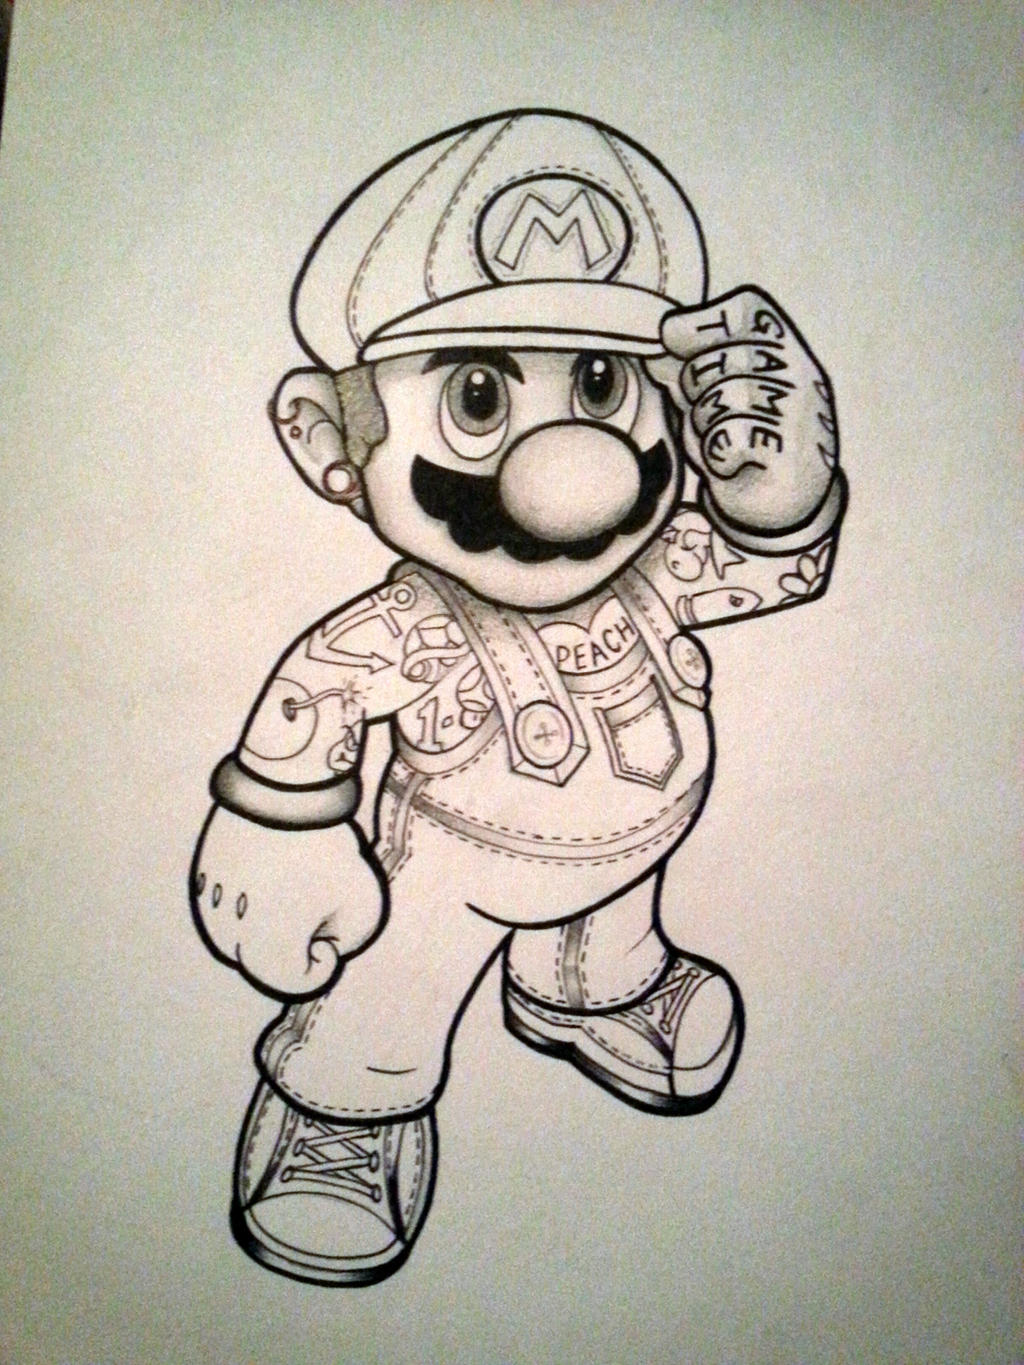 New school tattoo design - New School Mario By Yourfavoritelezbro New School Mario By Yourfavoritelezbro